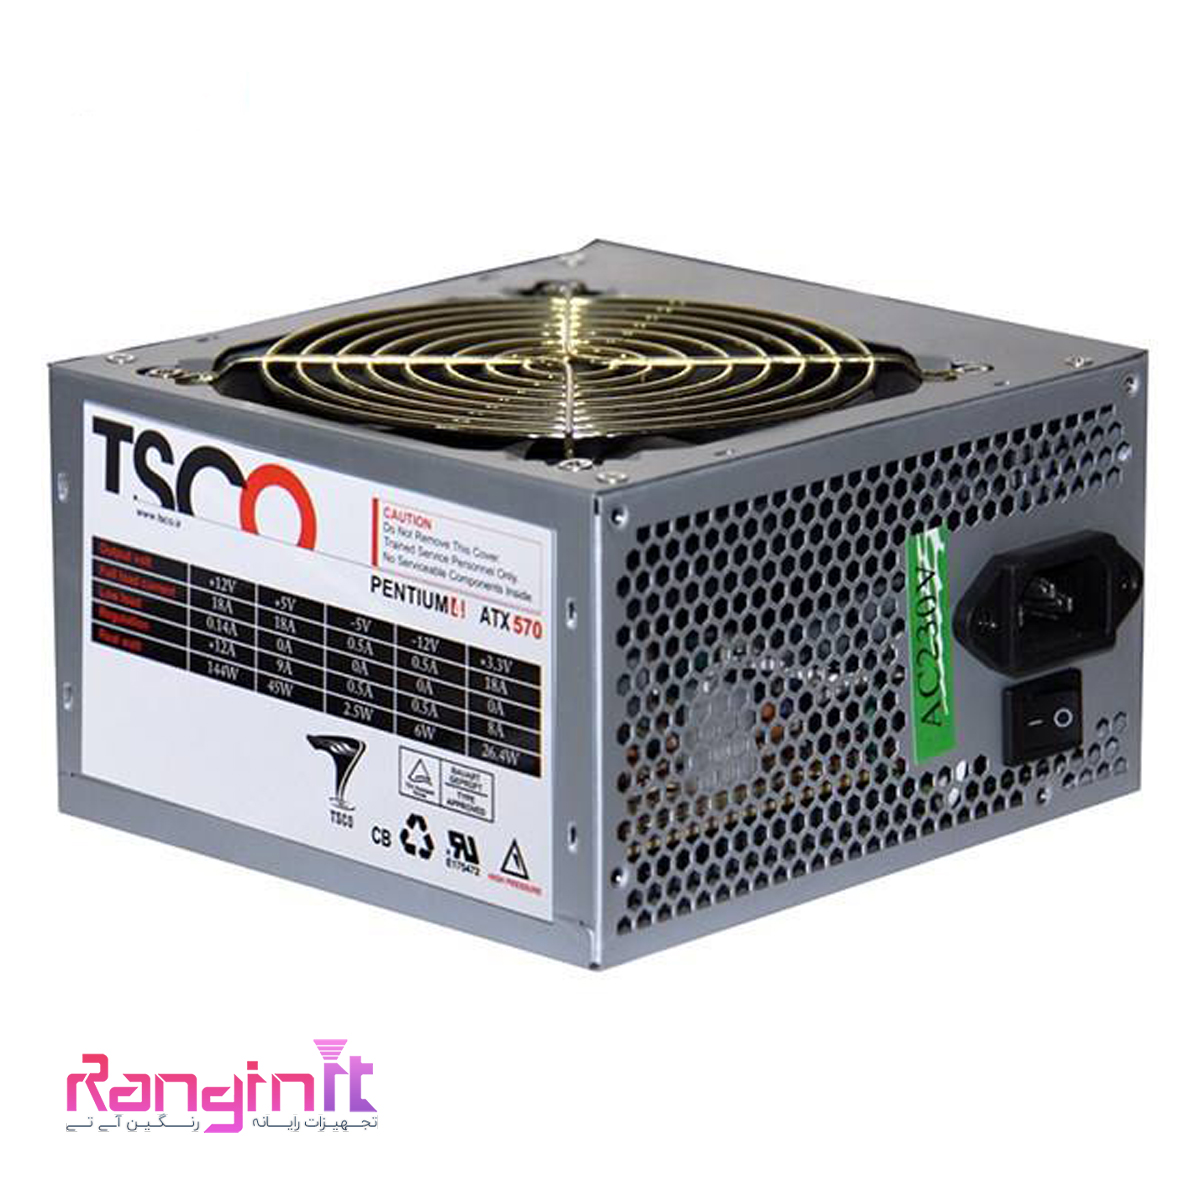 تصویر TSCO TP 570W Computer Power Supply TSCO TP 570W Computer Power Supply